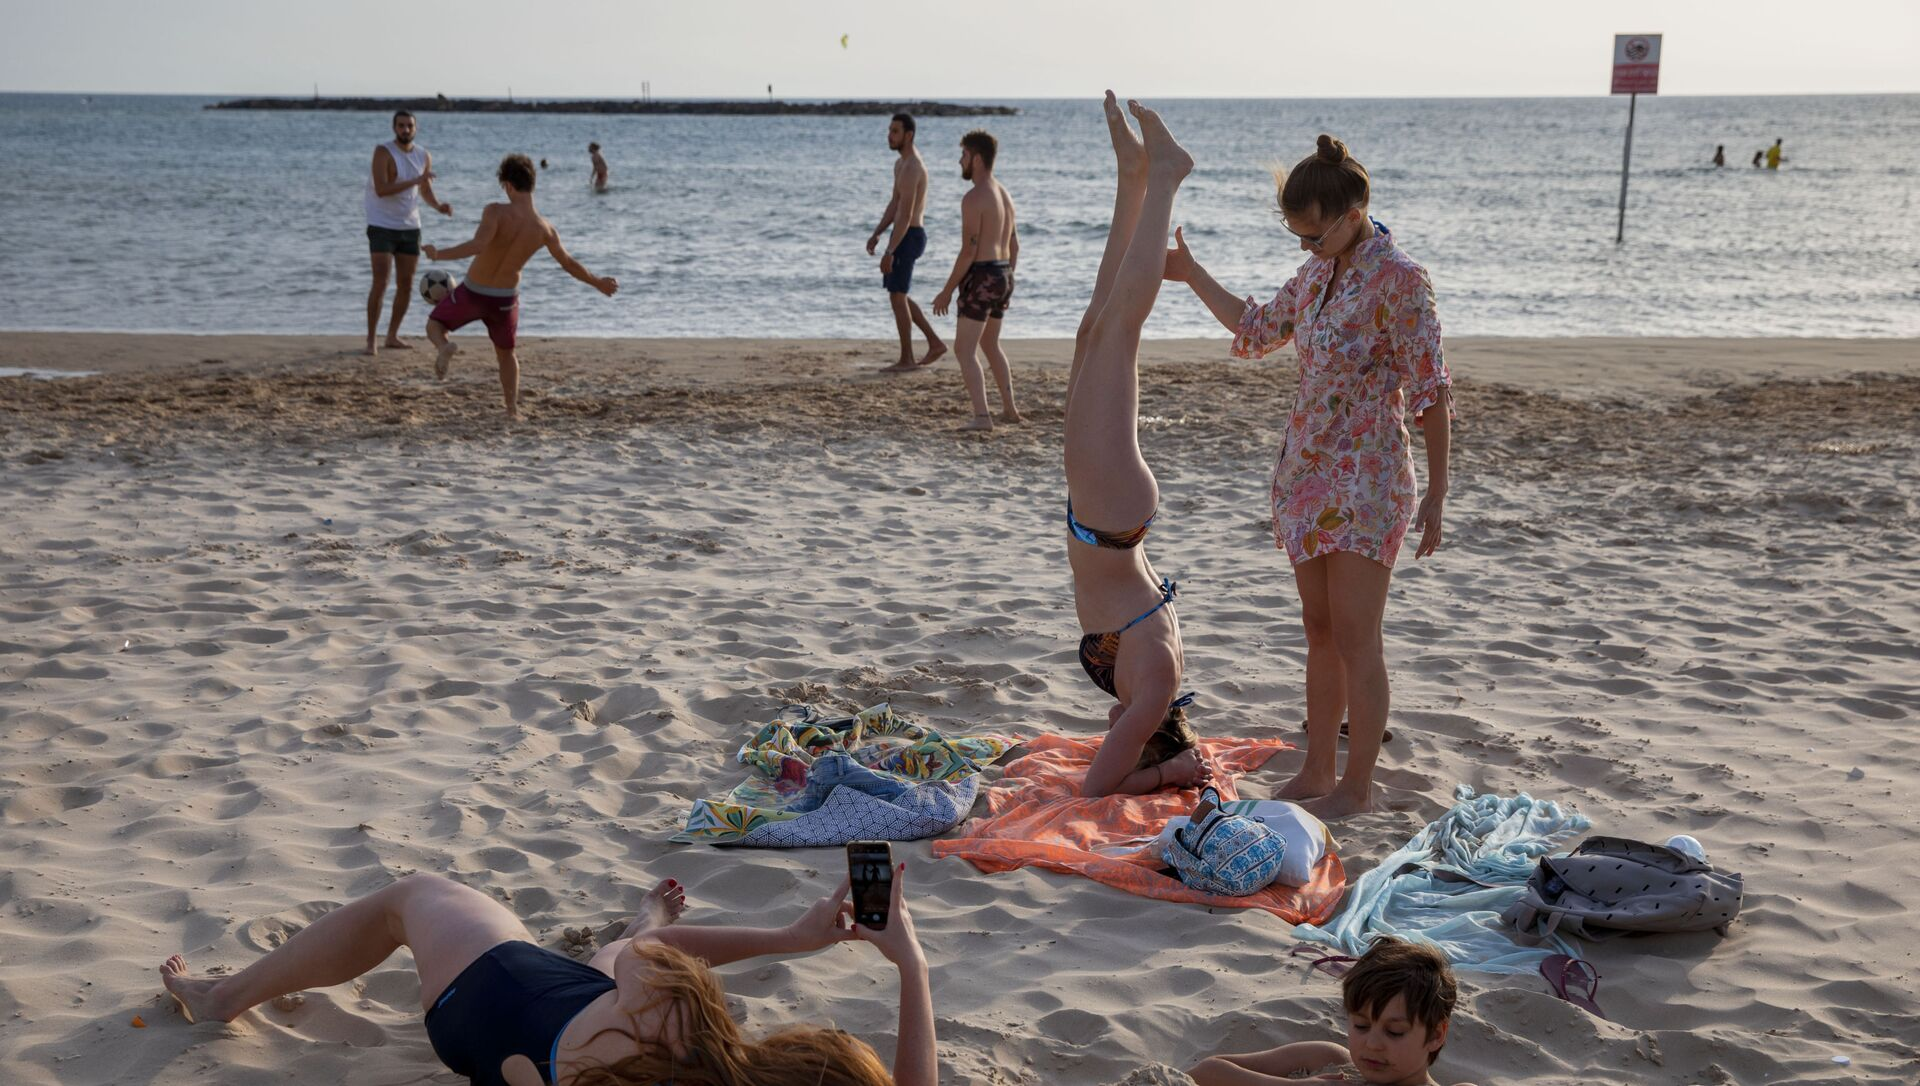 People enjoy the beach front in Tel Aviv, Israel, Saturday, May 16, 2020. Israeli authorities have recently begun loosening the restrictions of the coronavirus lockdown, the easing brought people out of their homes to enjoy the outdoors.  - Sputnik International, 1920, 06.07.2021